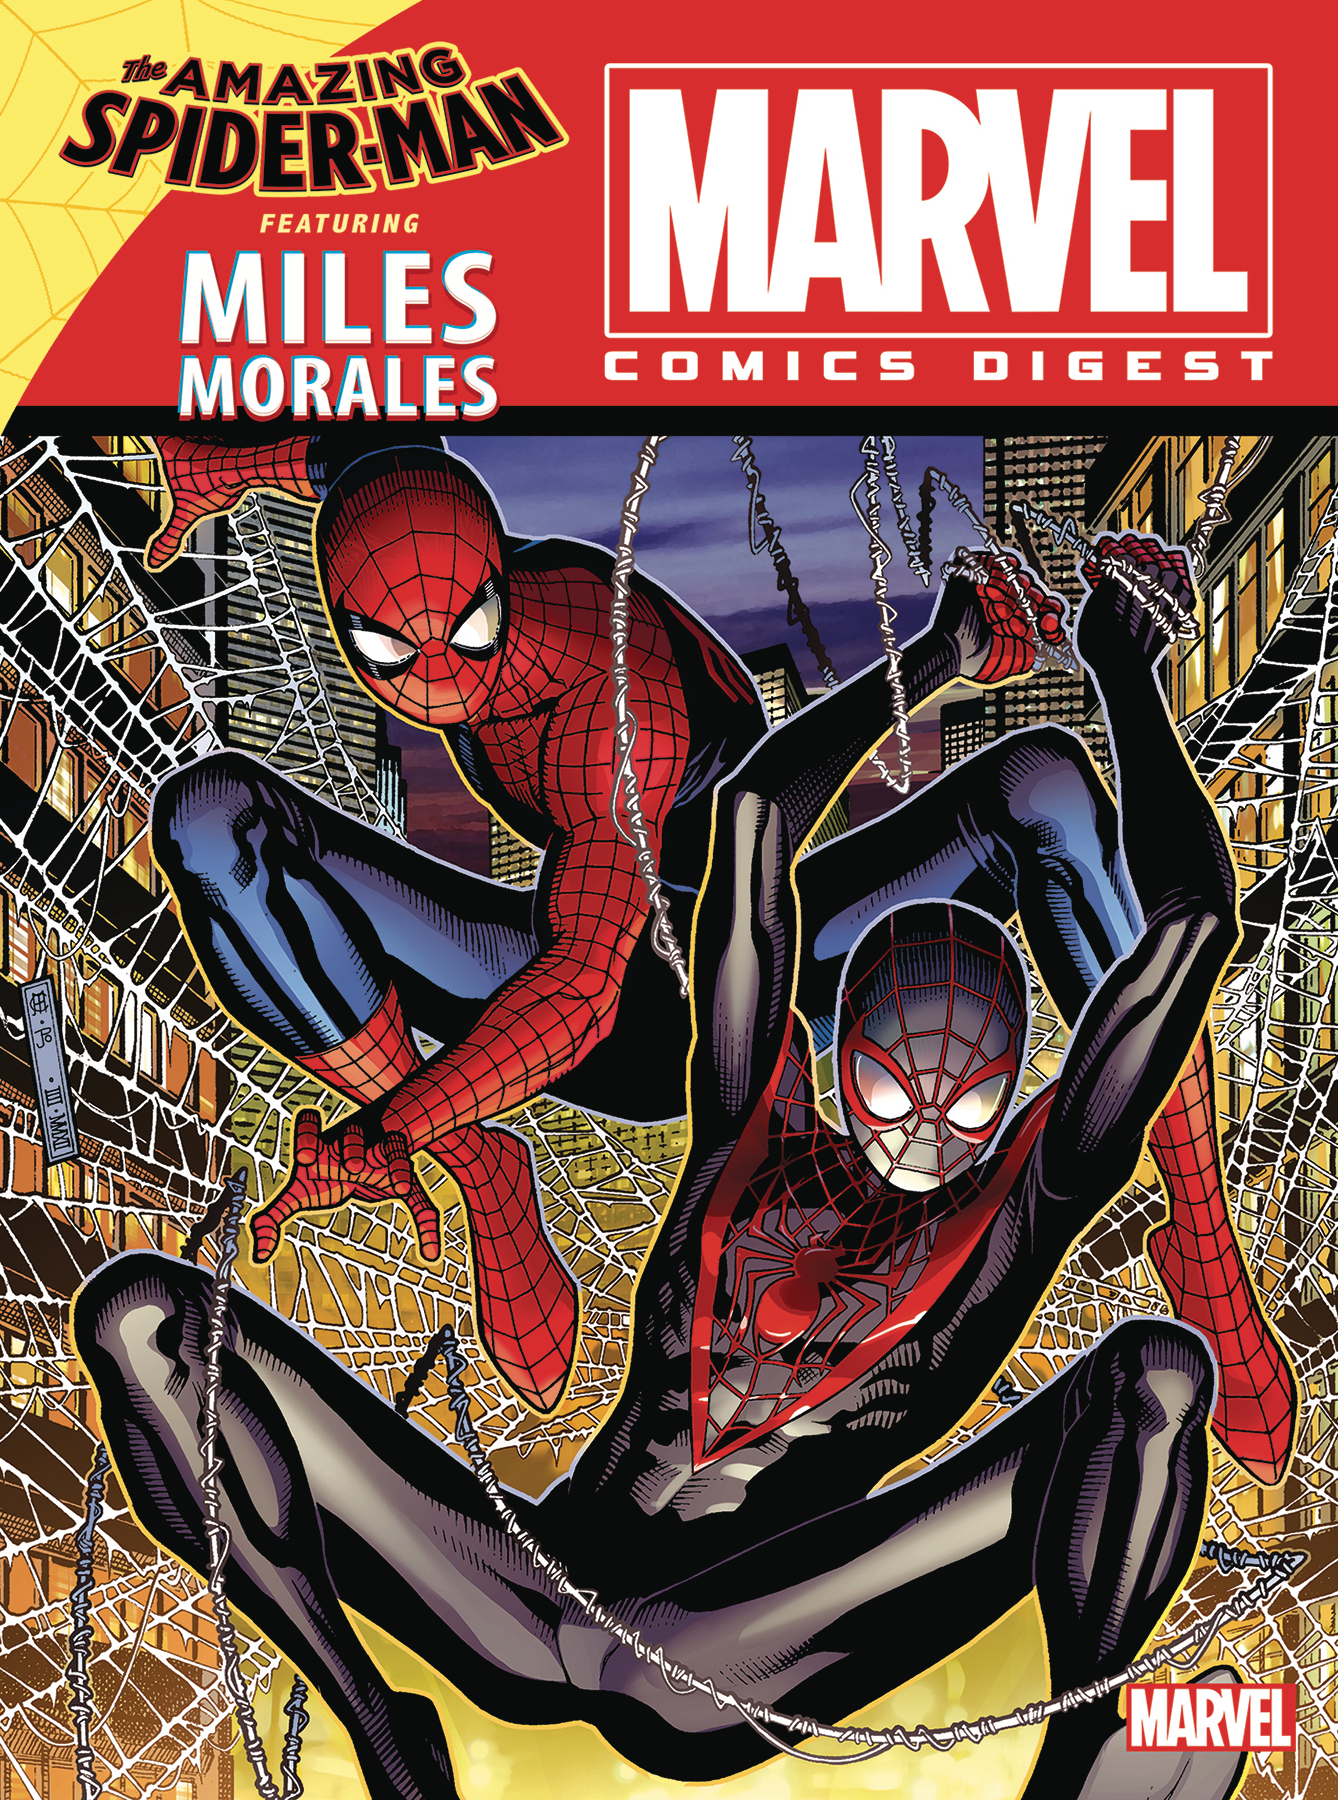 MARVEL COMICS DIGEST #10 SPIDERMAN